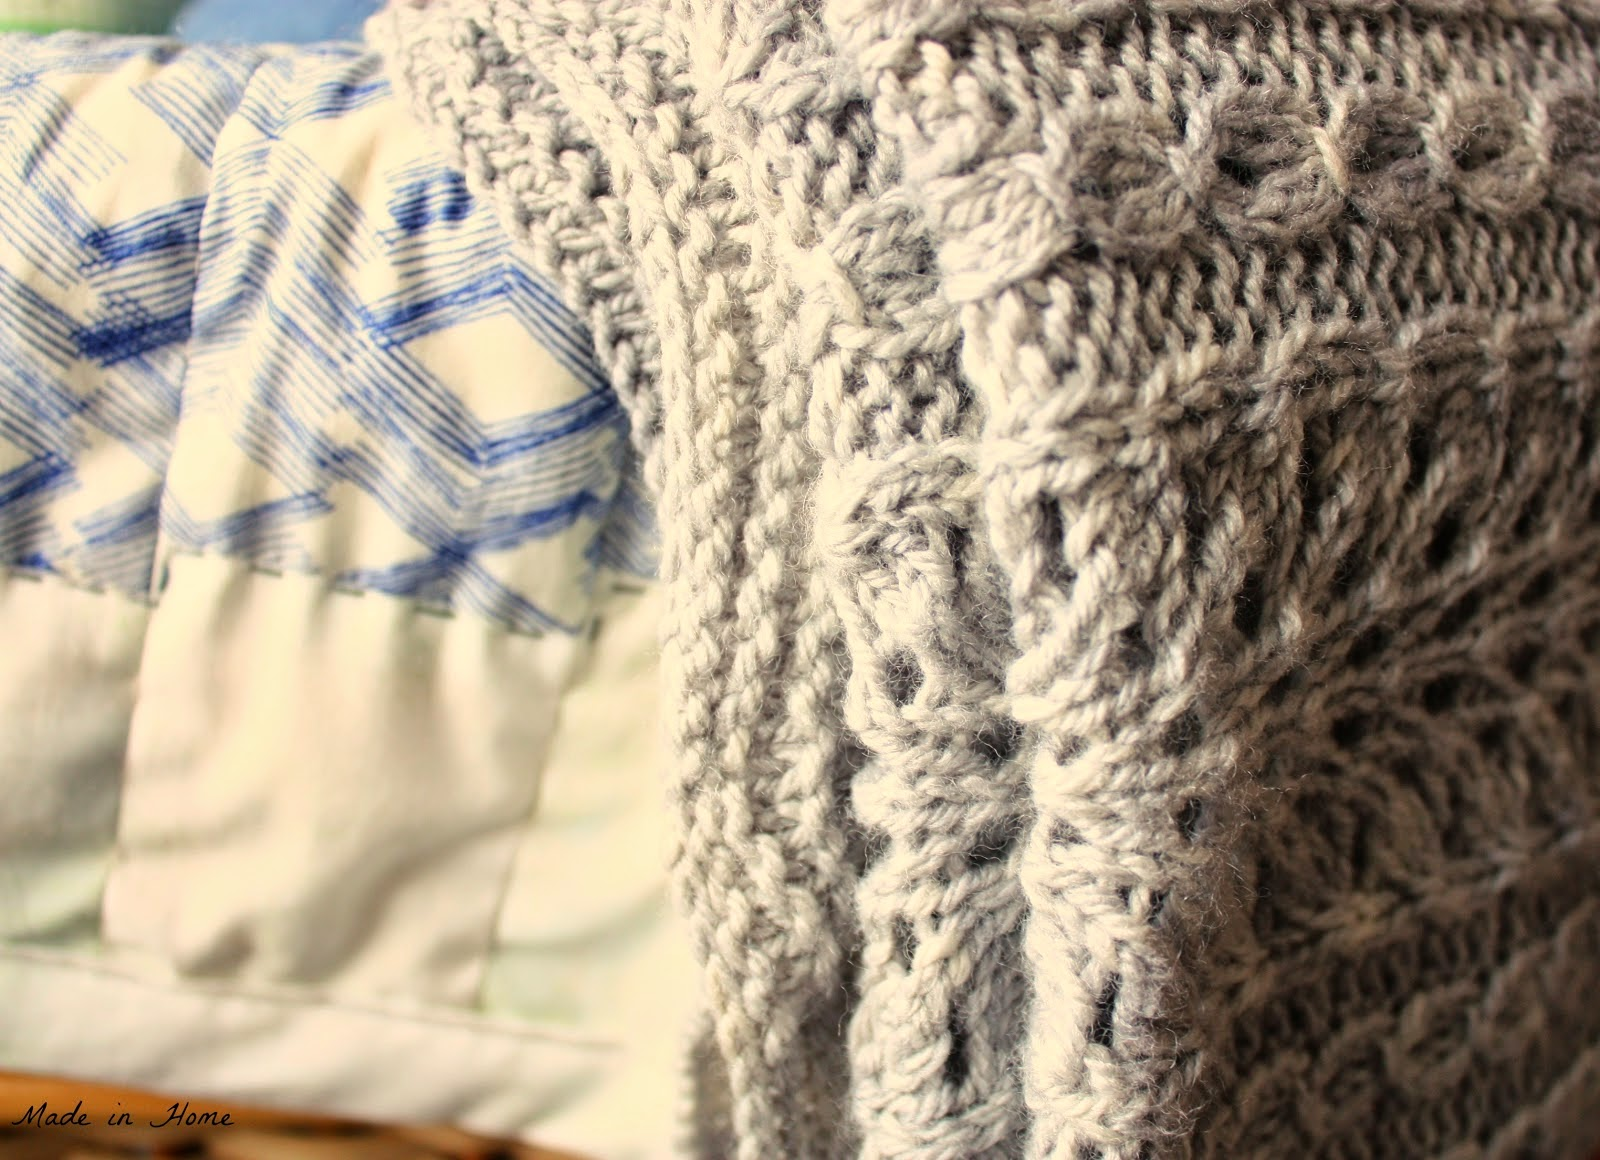 Made in Home: The need to nest | WIP {Knitting}